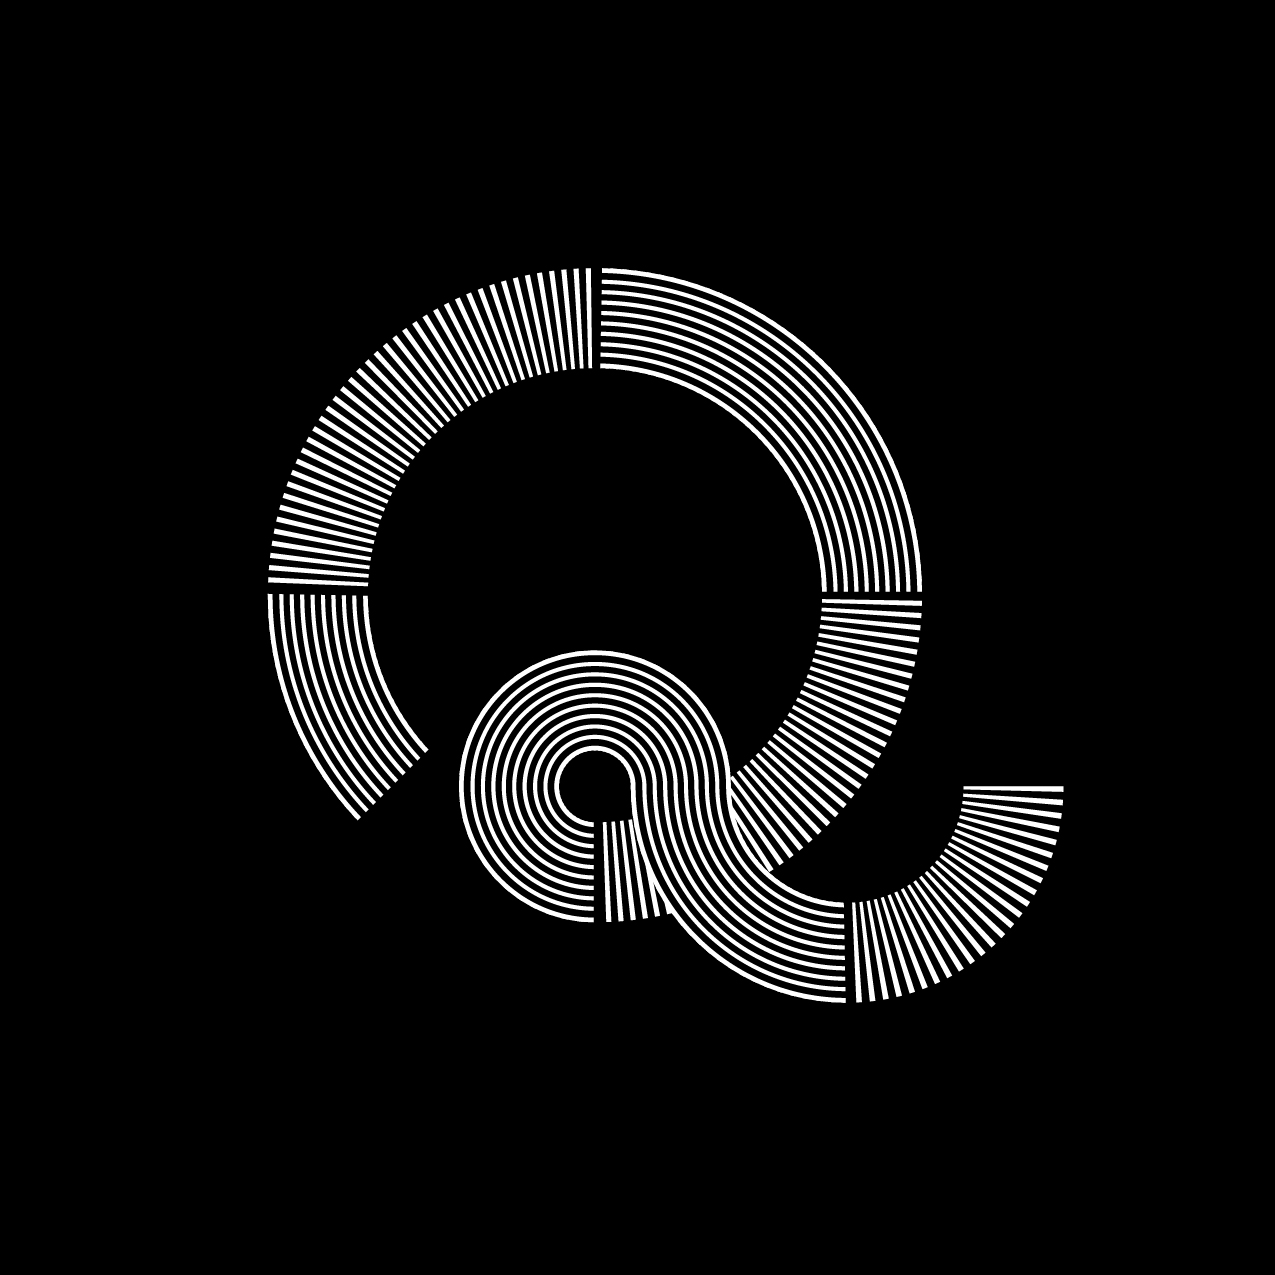 Letter Q1 Design by Furia